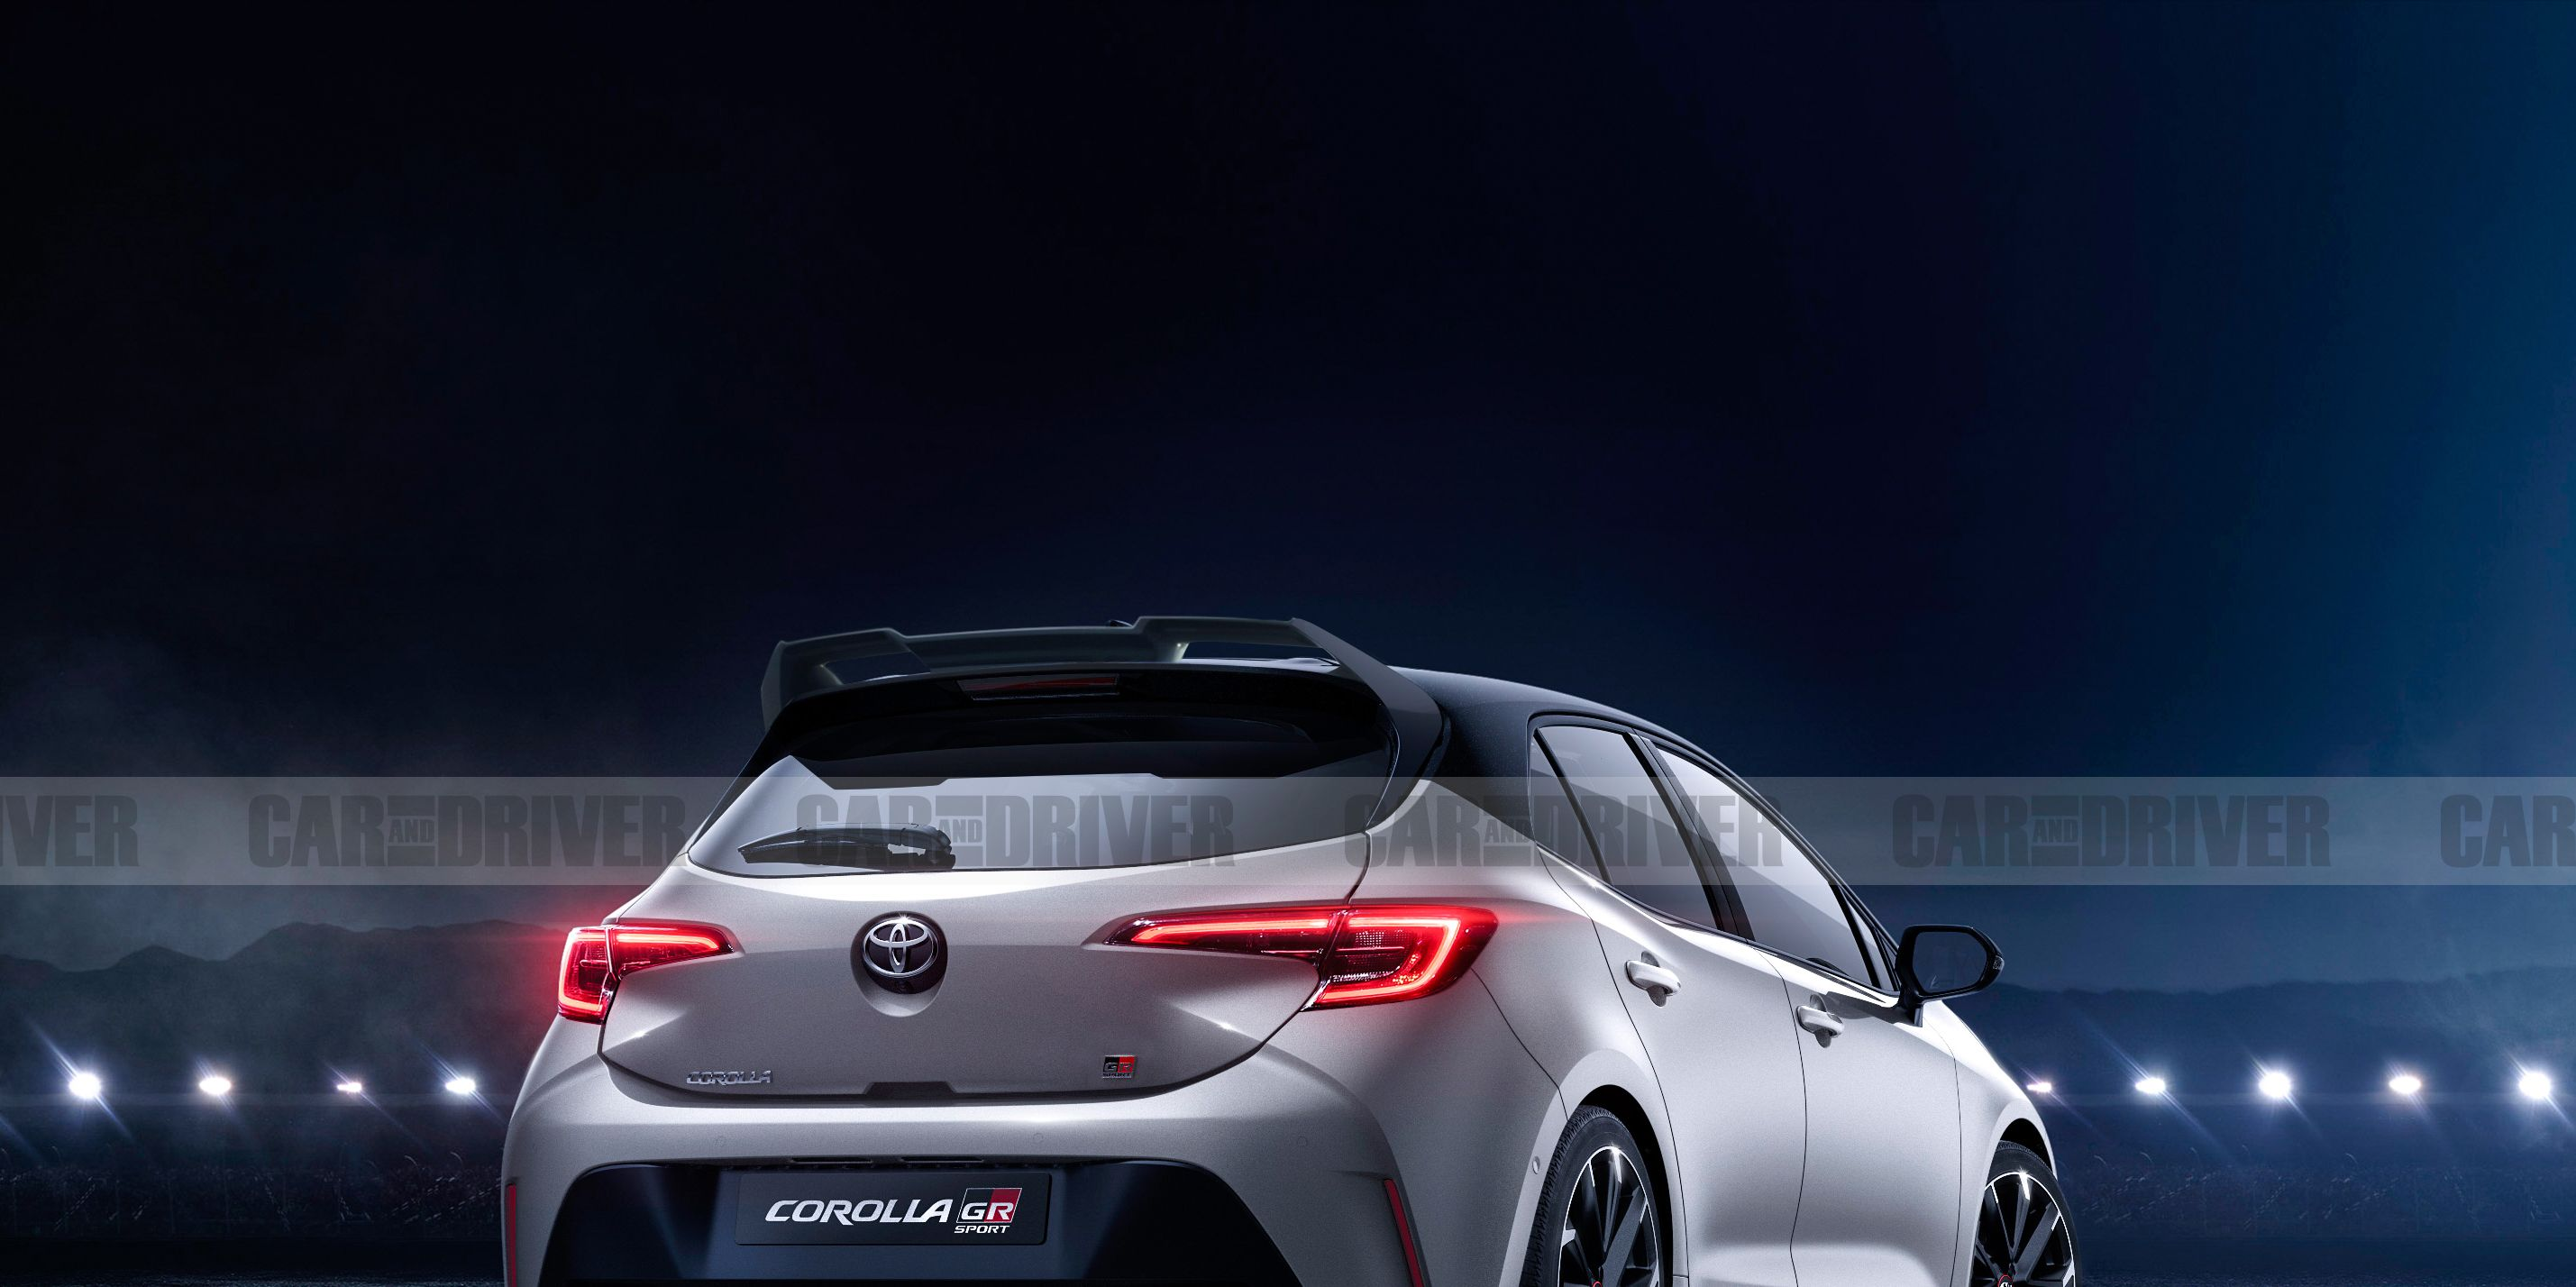 257-HP Toyota Corolla GR Turbocharged Hot Hatch Is Coming